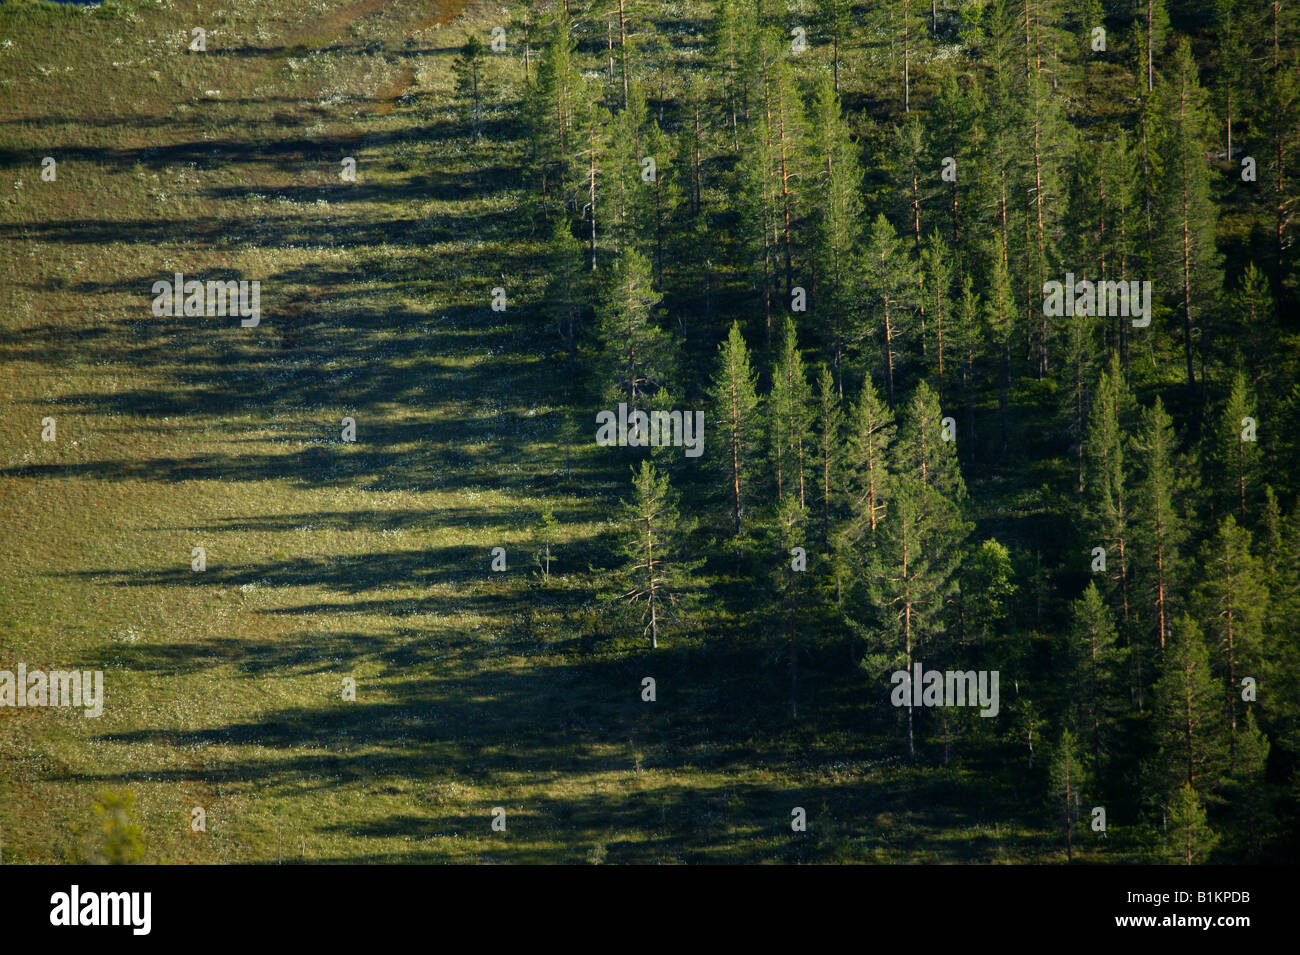 Pine forest and marshlands below the mountain Andersnatten in Eggedal, Buskerud fylke, Norway. - Stock Image